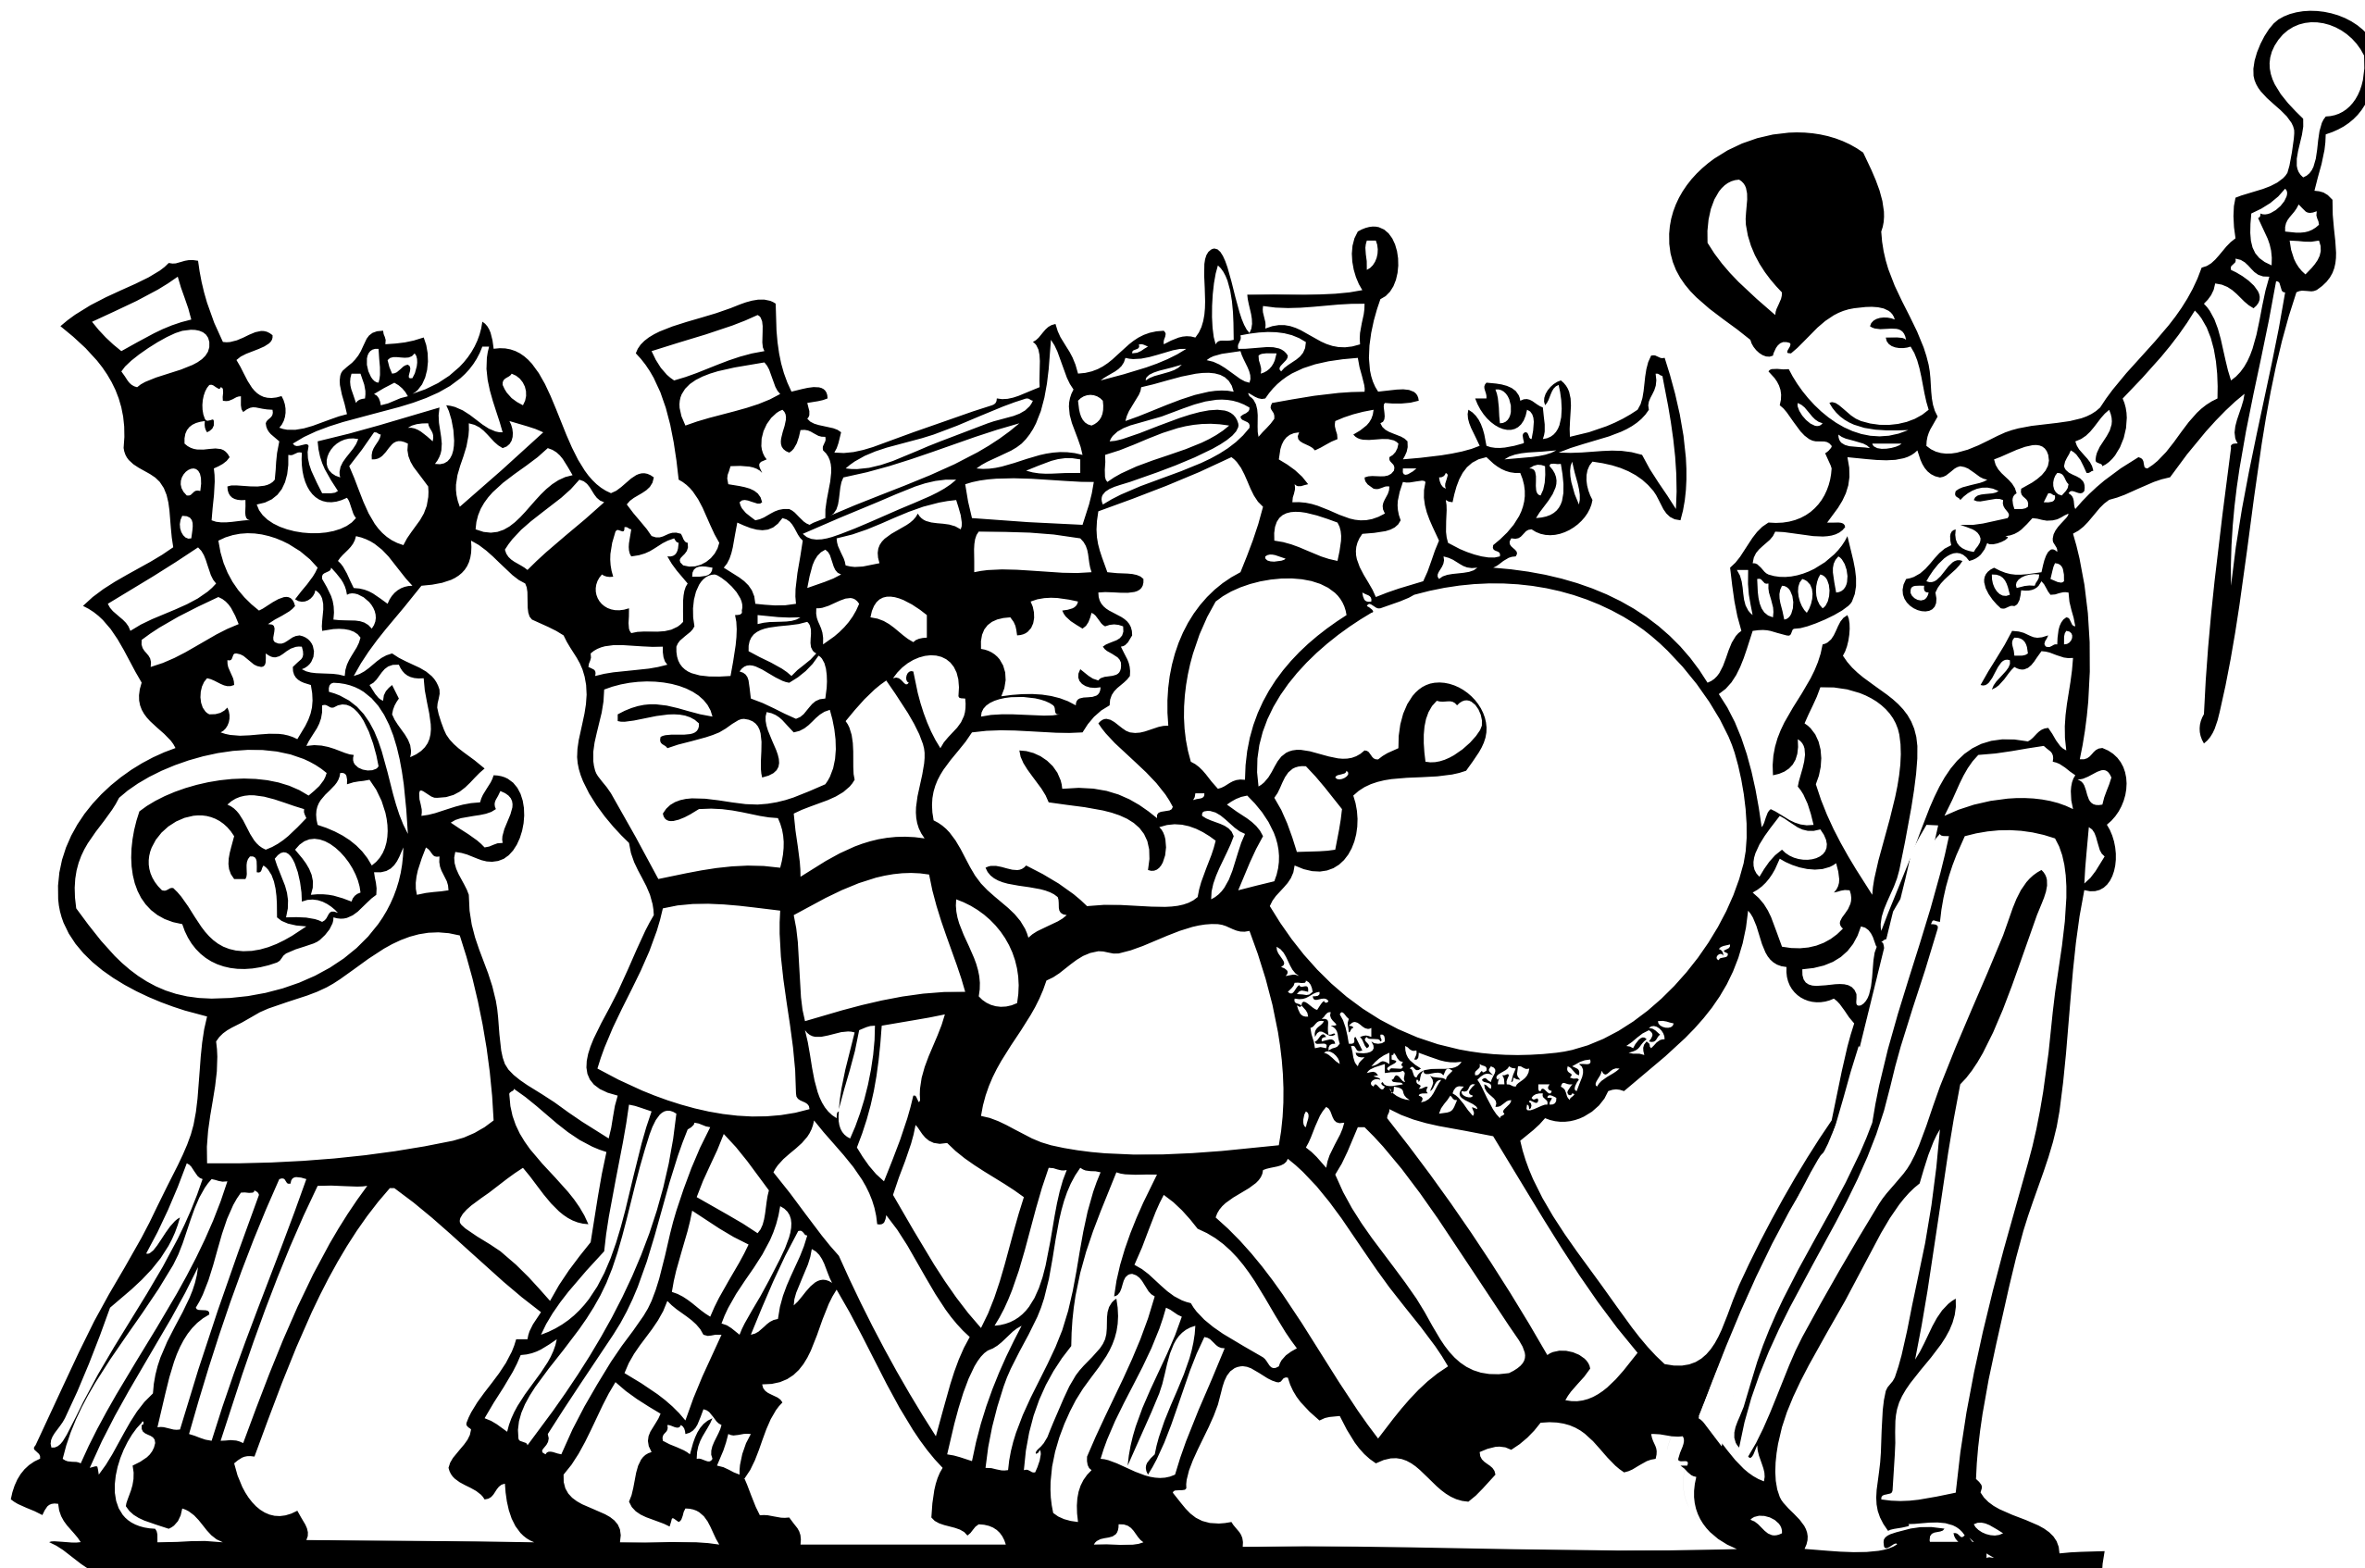 Free Band Camp Cliparts Download Free Clip Art Free Clip